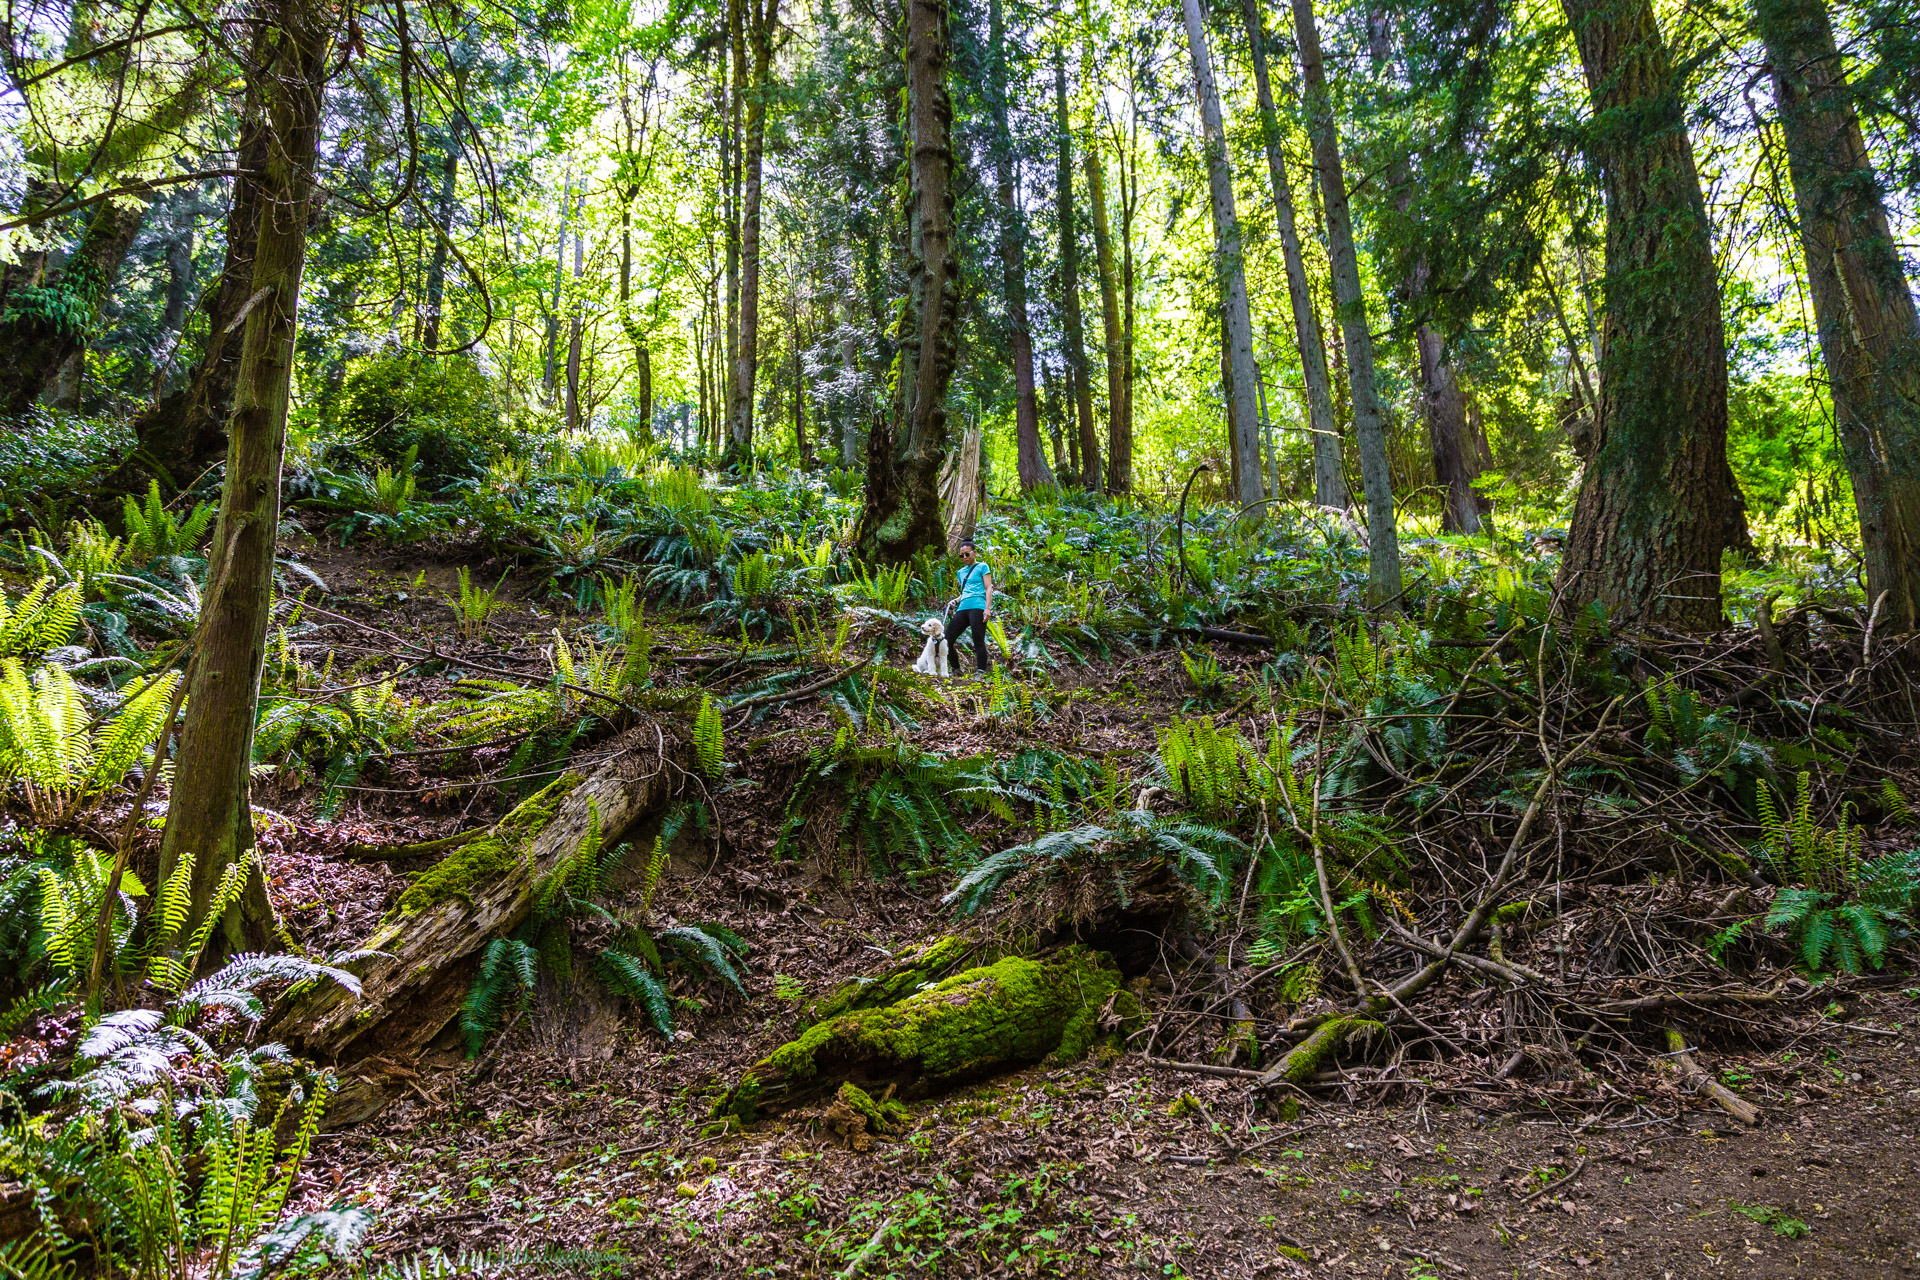 Introducing Prana To Hiking At An Urban Forest In Bellevue